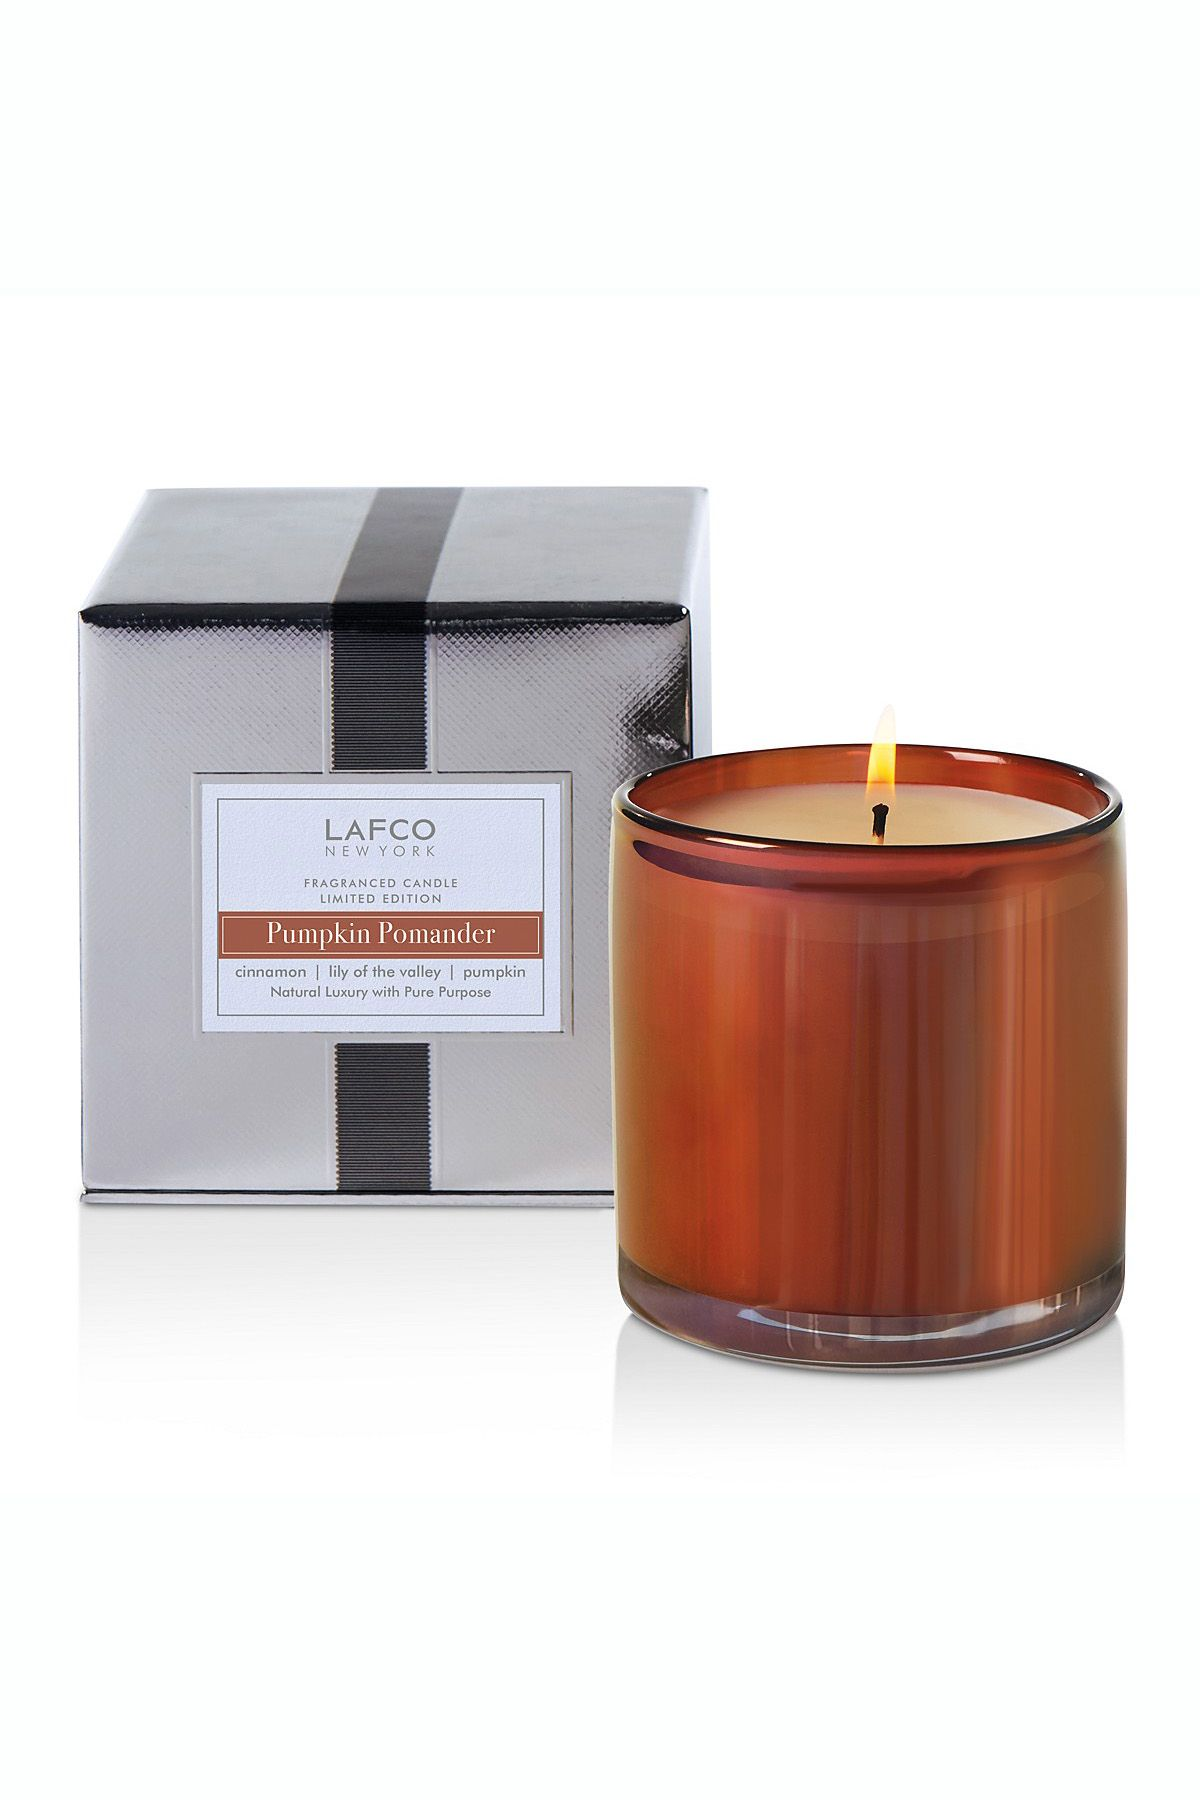 25 Best Fall Candles Top Scented Soy For Natural Wax Cinnamon Vanilla